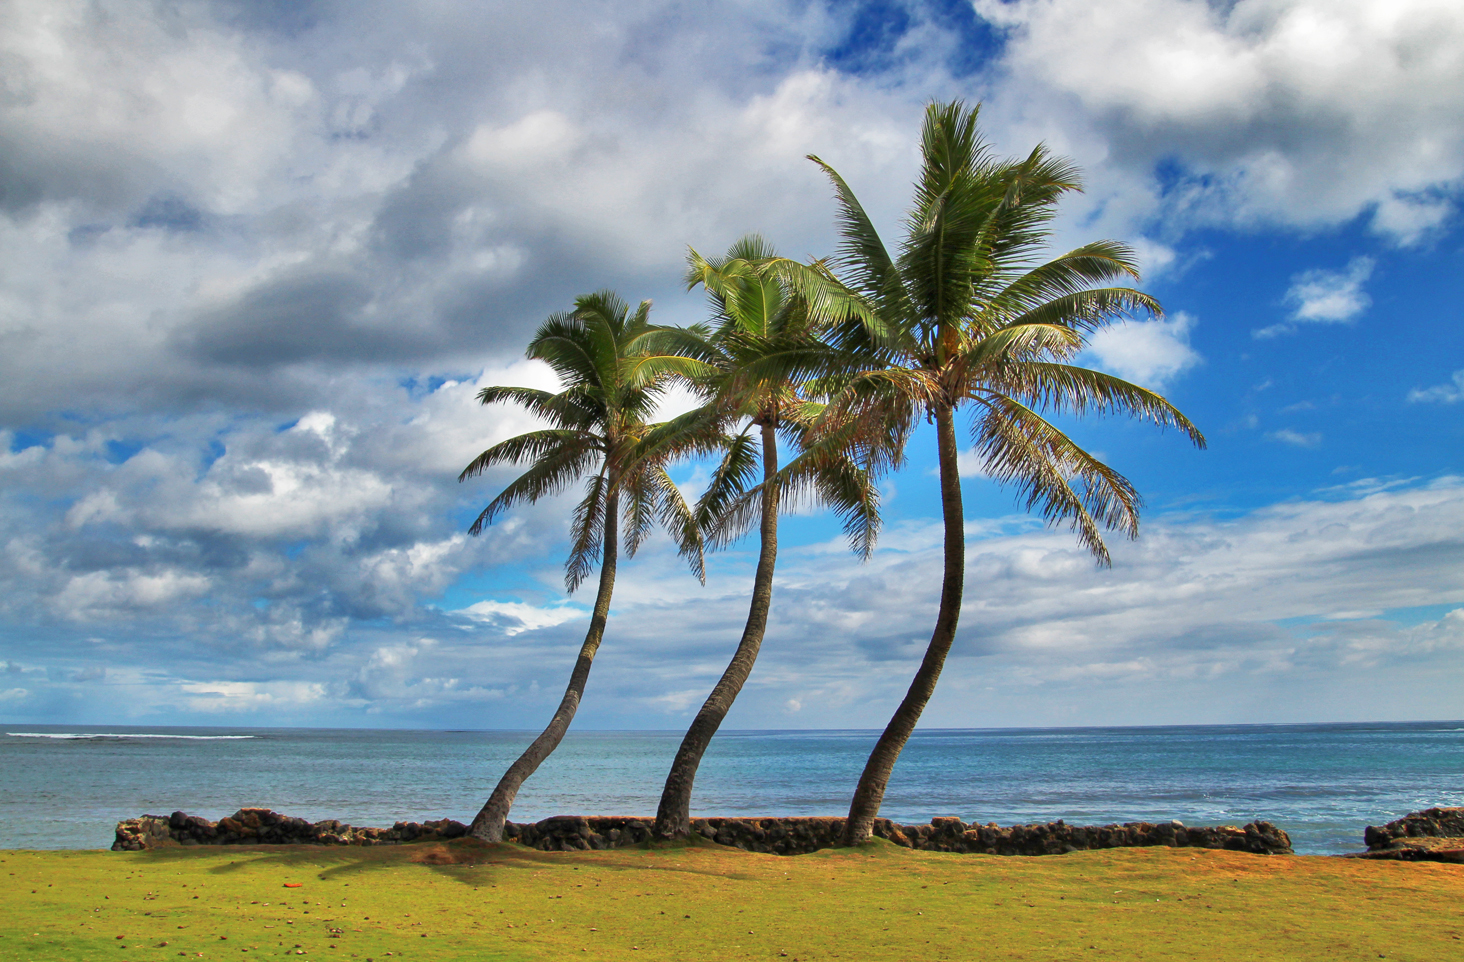 Palm trees in Hau'ula